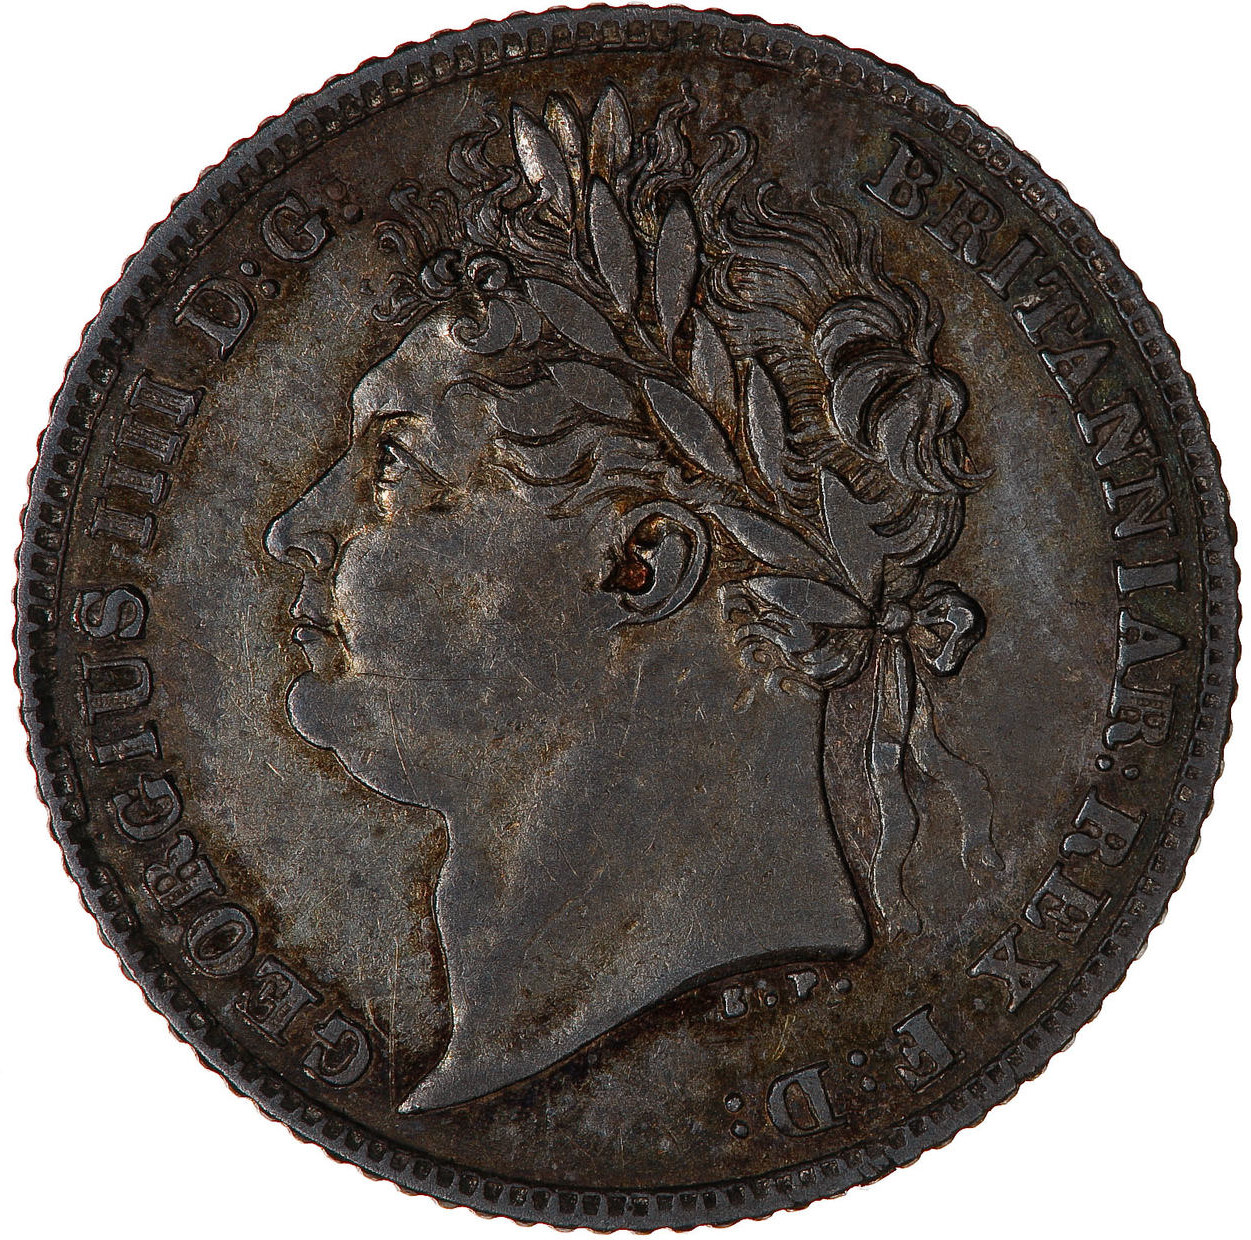 Sixpence 1824: Photo Coin - Sixpence, George IV, Great Britain, 1824